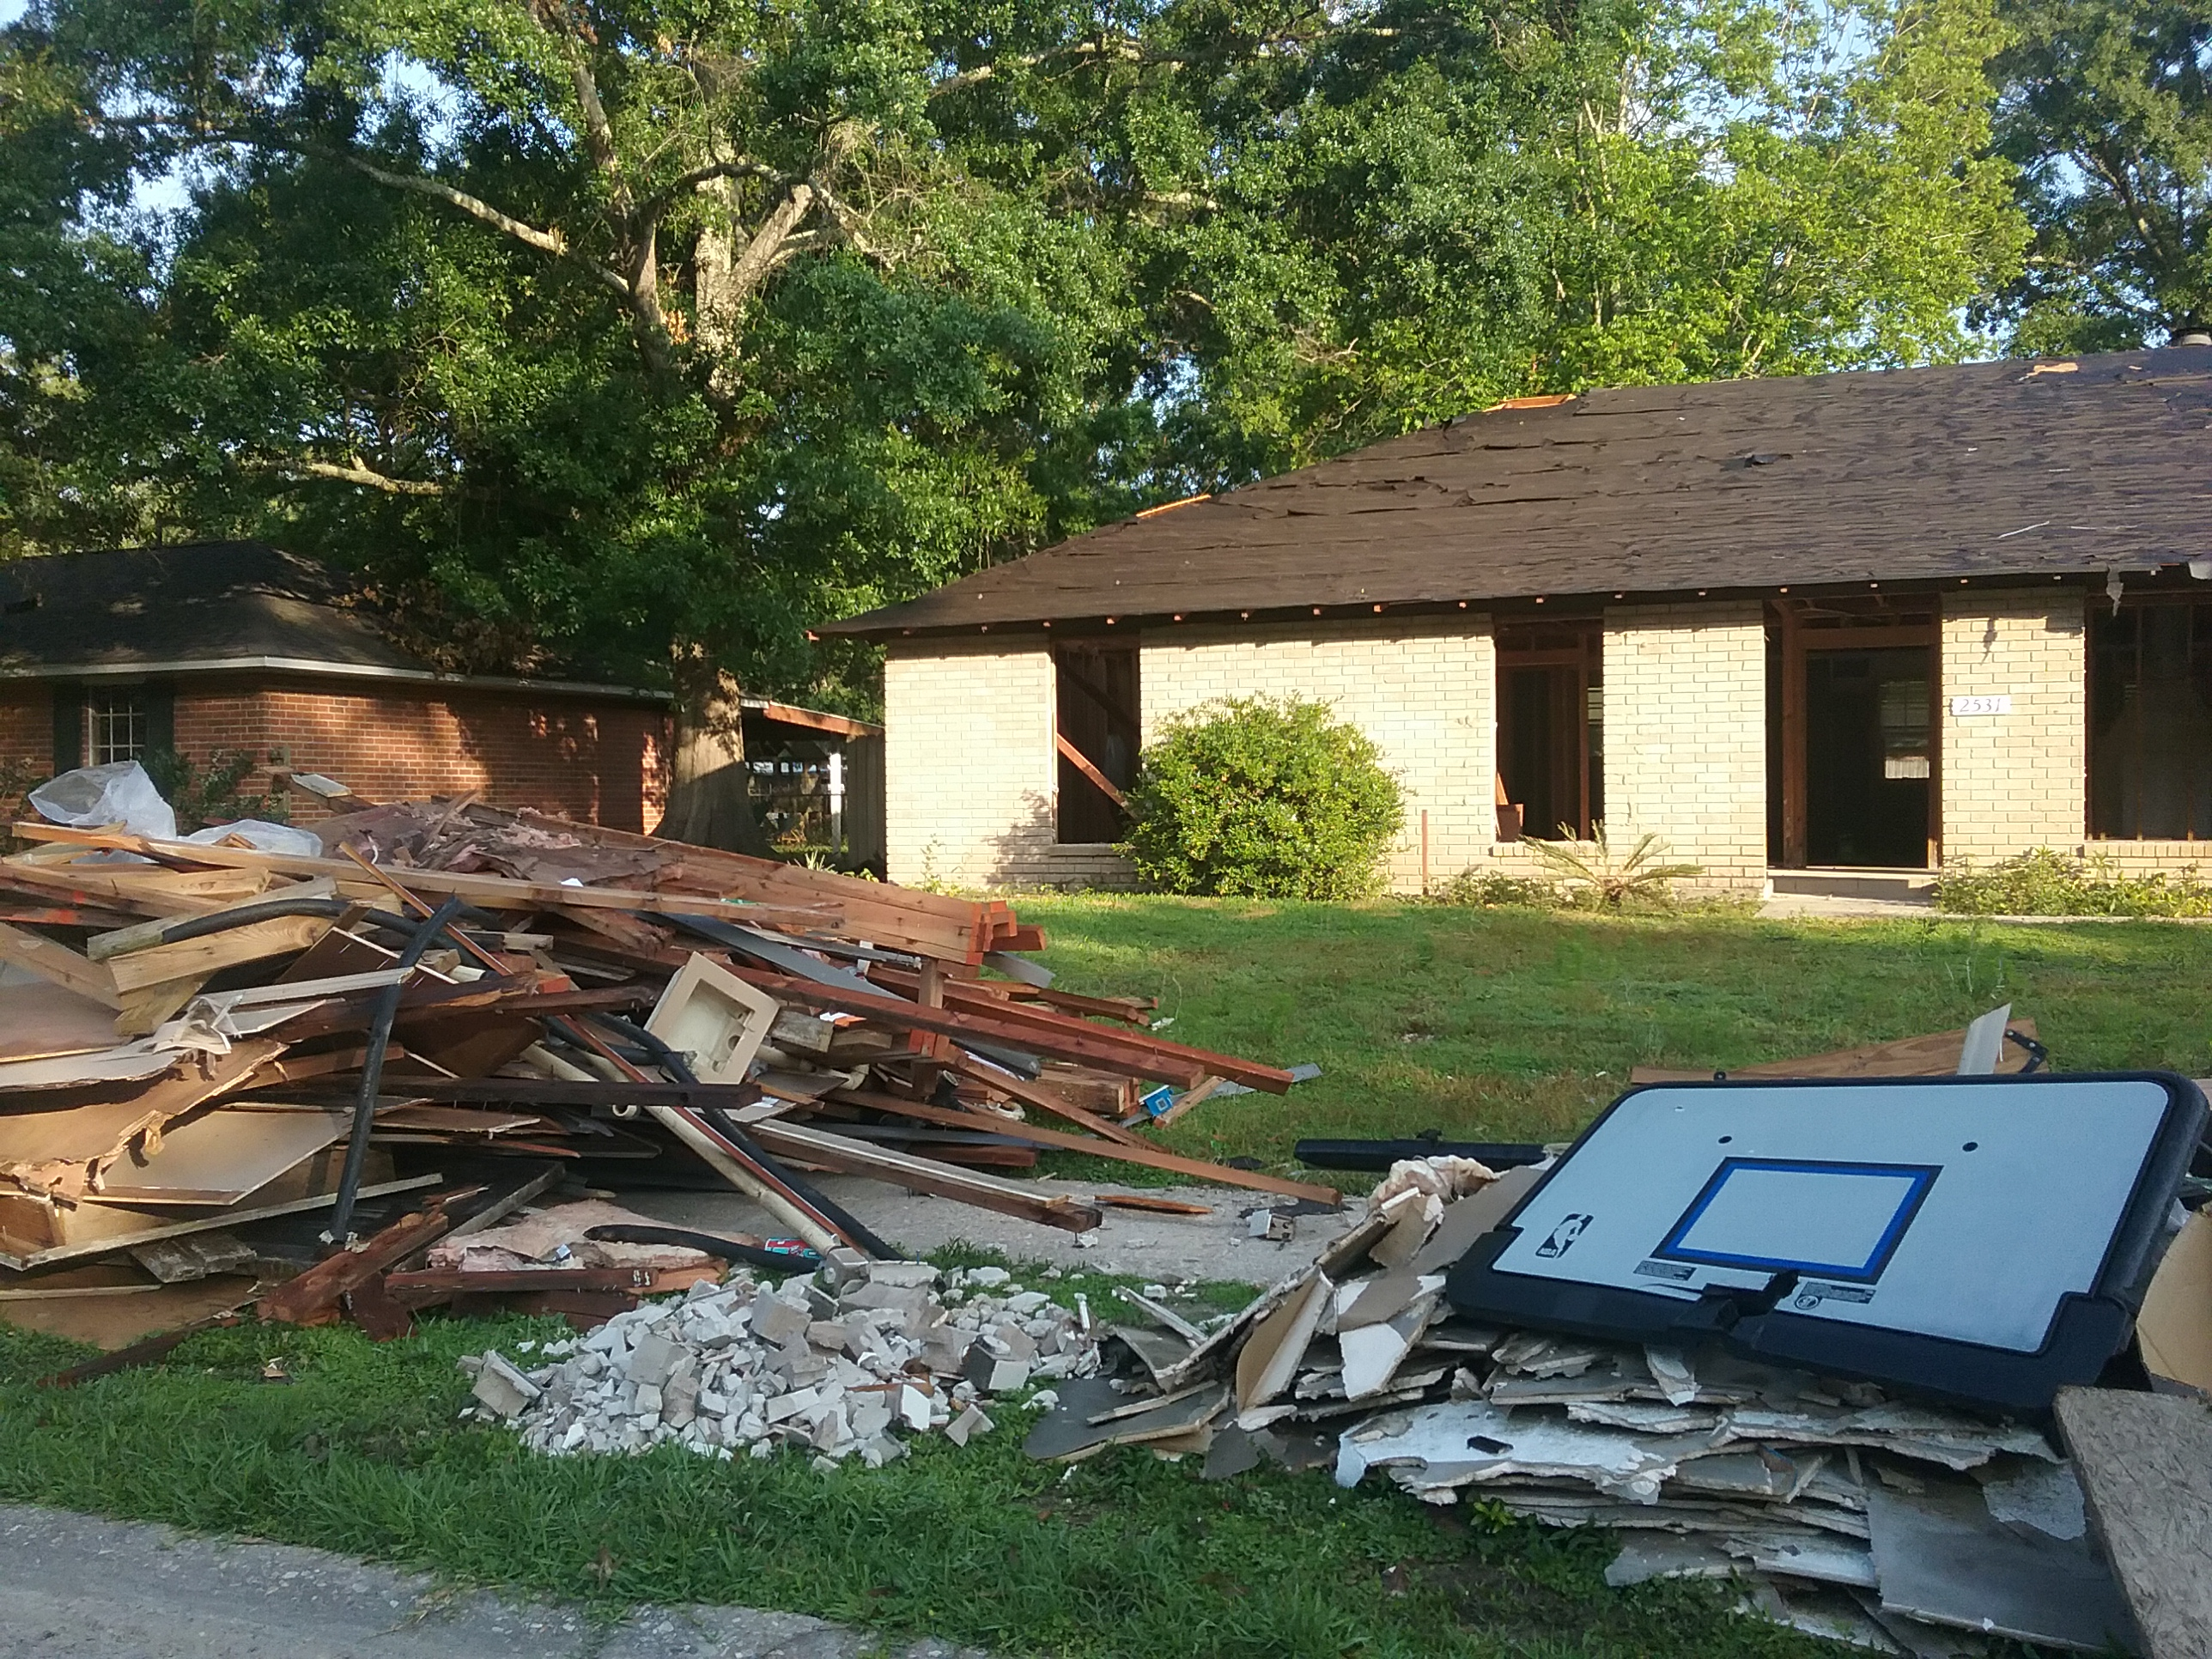 Gutted_House_w_Debris_good_shot.jpg